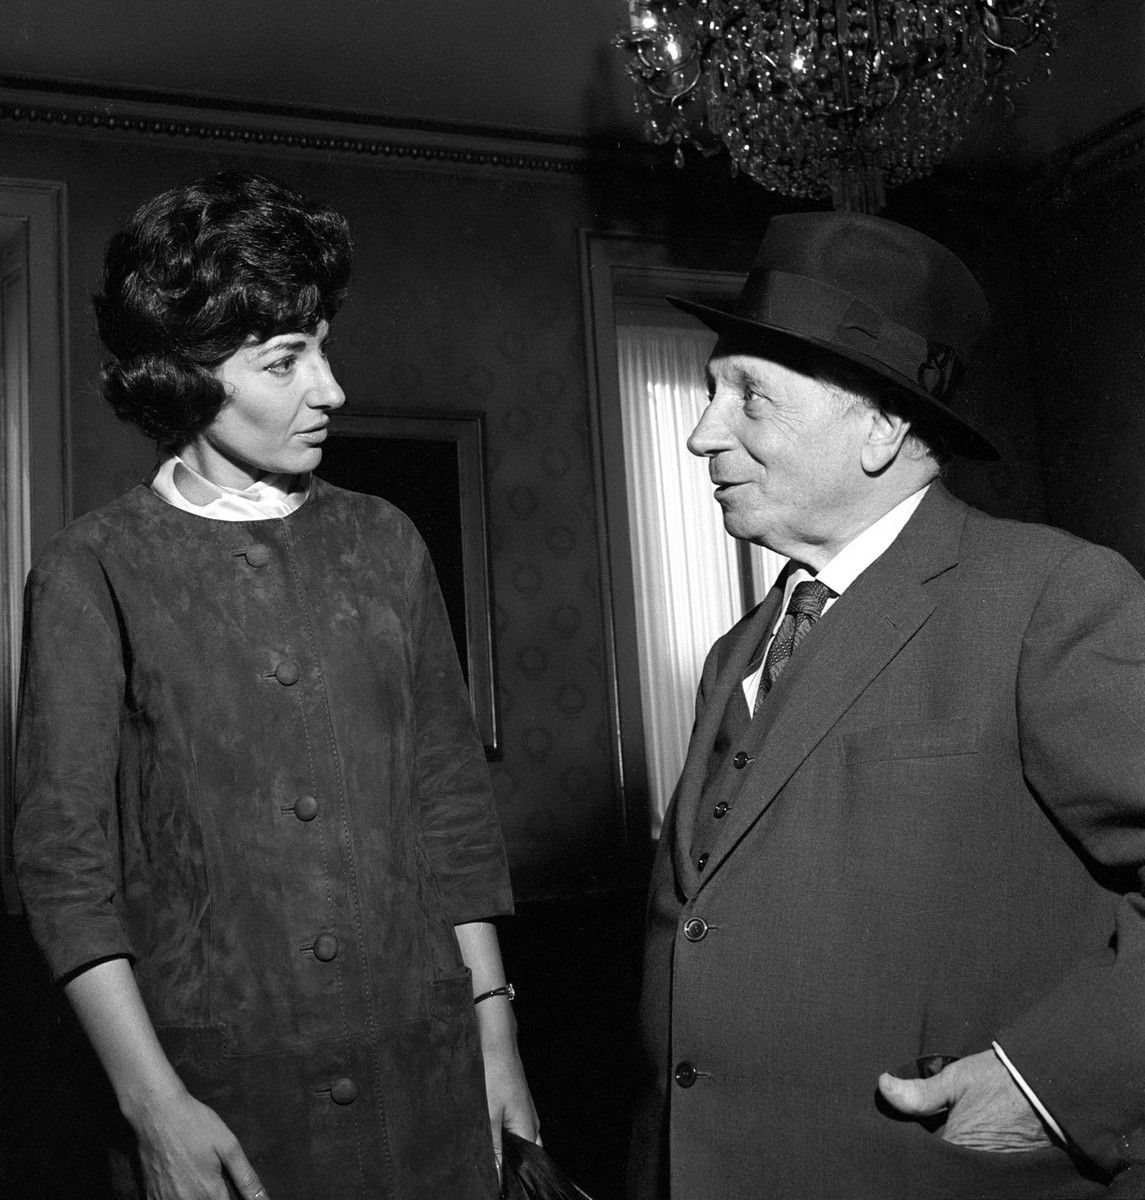 Callas with Serafin in 1960